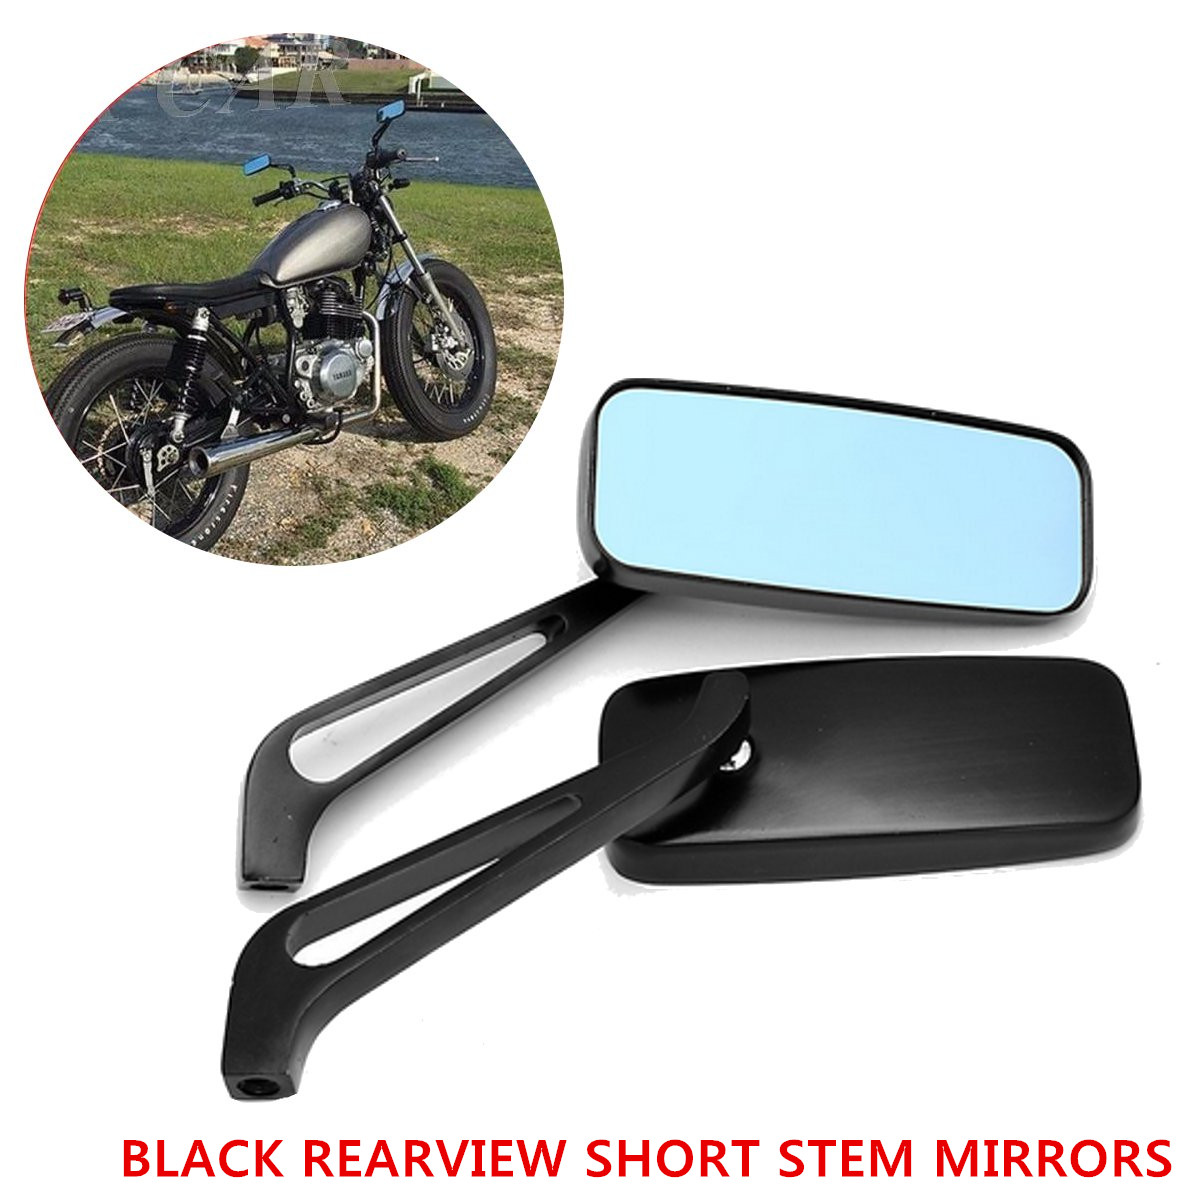 Black Motorcycle Rearview Mirrors For Harley Fatboy Electra Glide Road Glide US